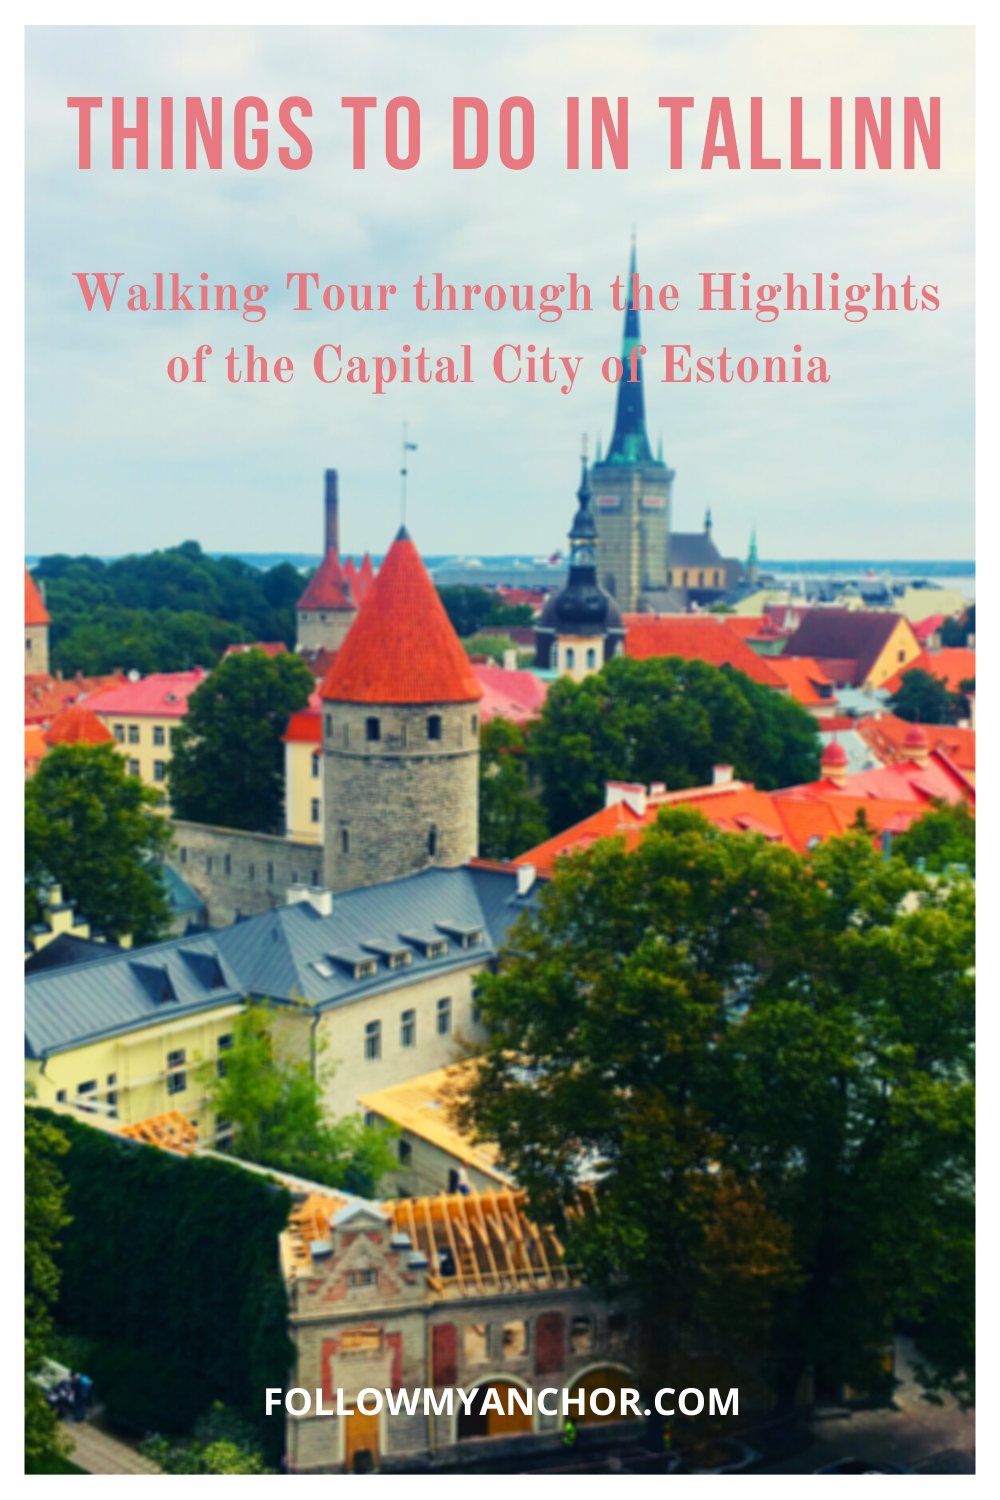 THINGS TO DO IN TALLINN: WALKING TOUR FOR CRUISE GUESTS